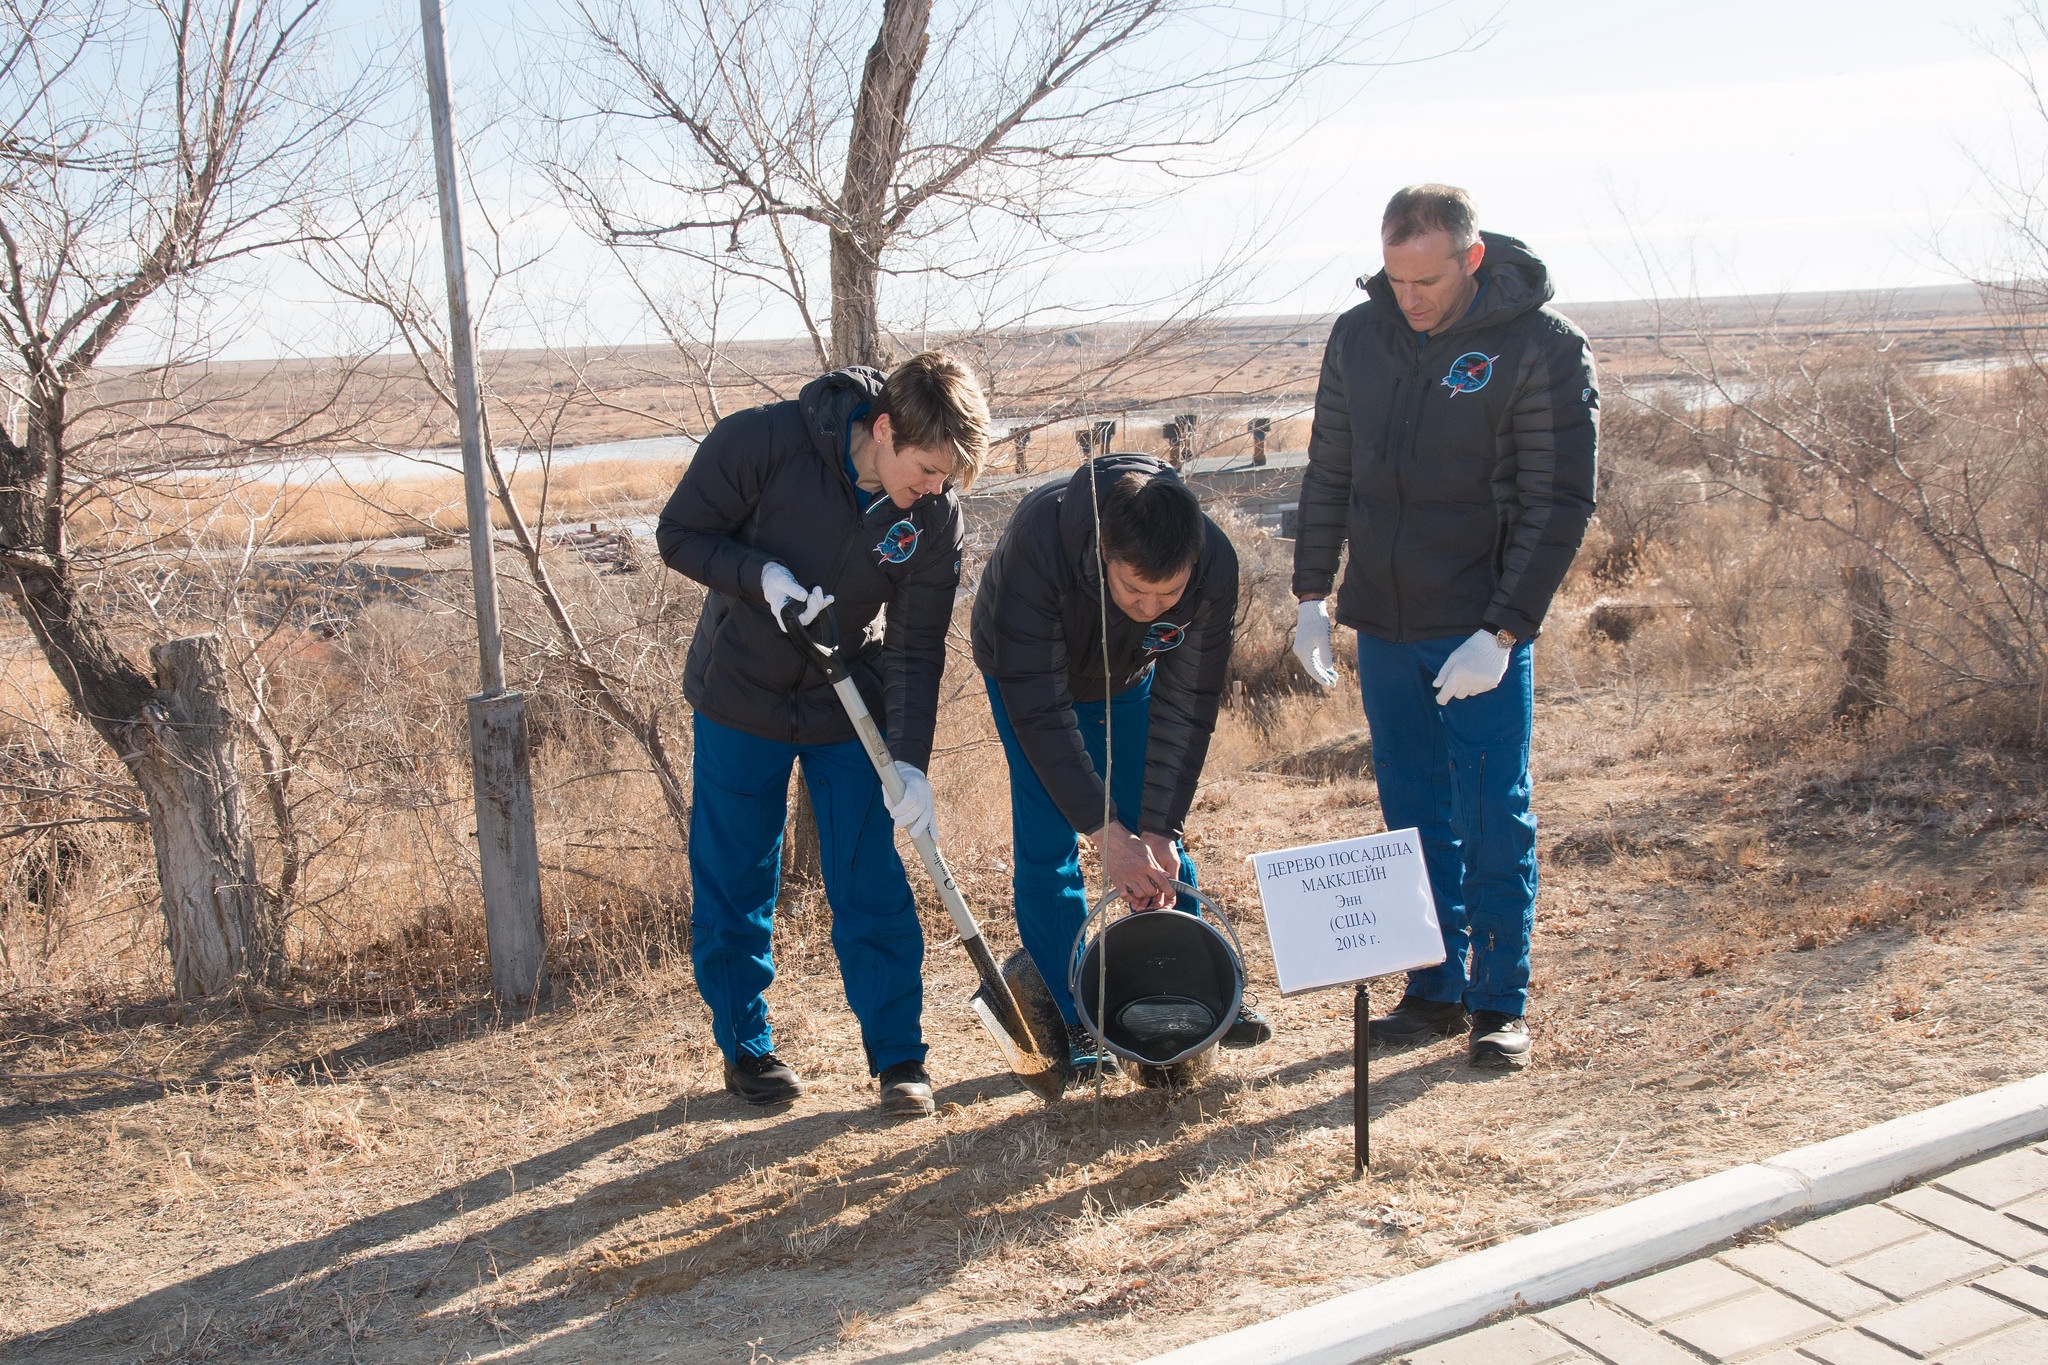 At their Cosmonaut Hotel crew quarters in Baikonur, Kazakhstan, Expedition 58 crew members Anne McClain of NASA (left), Oleg Kononenko of Roscosmos (center)and David Saint-Jacques of the Canadian Space Agency (right) plant a tree in McClain's name Nov. 27